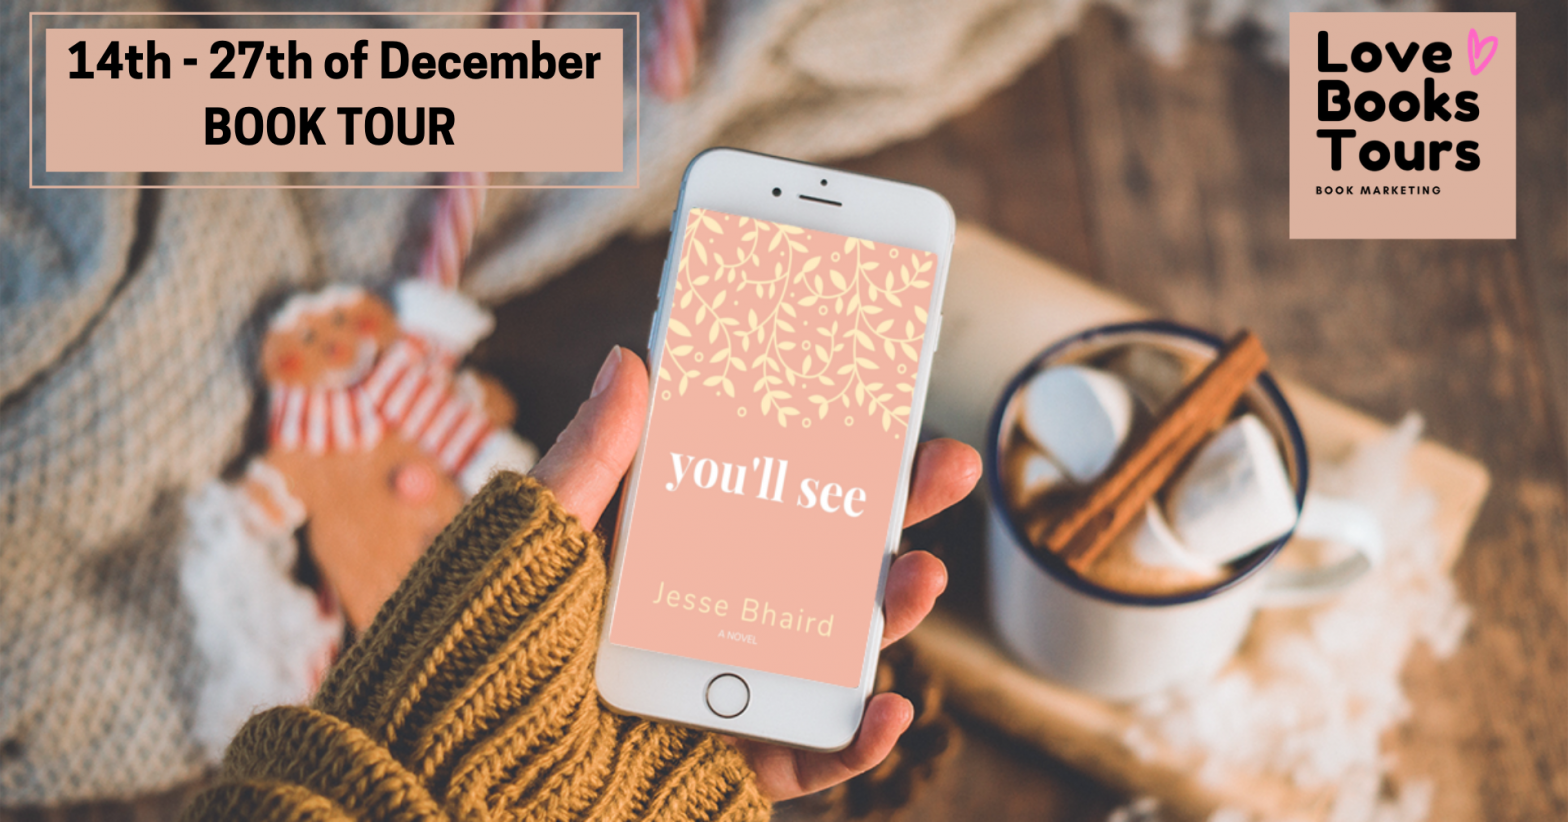 You'll See by Jesse Bhaird – Book tour review